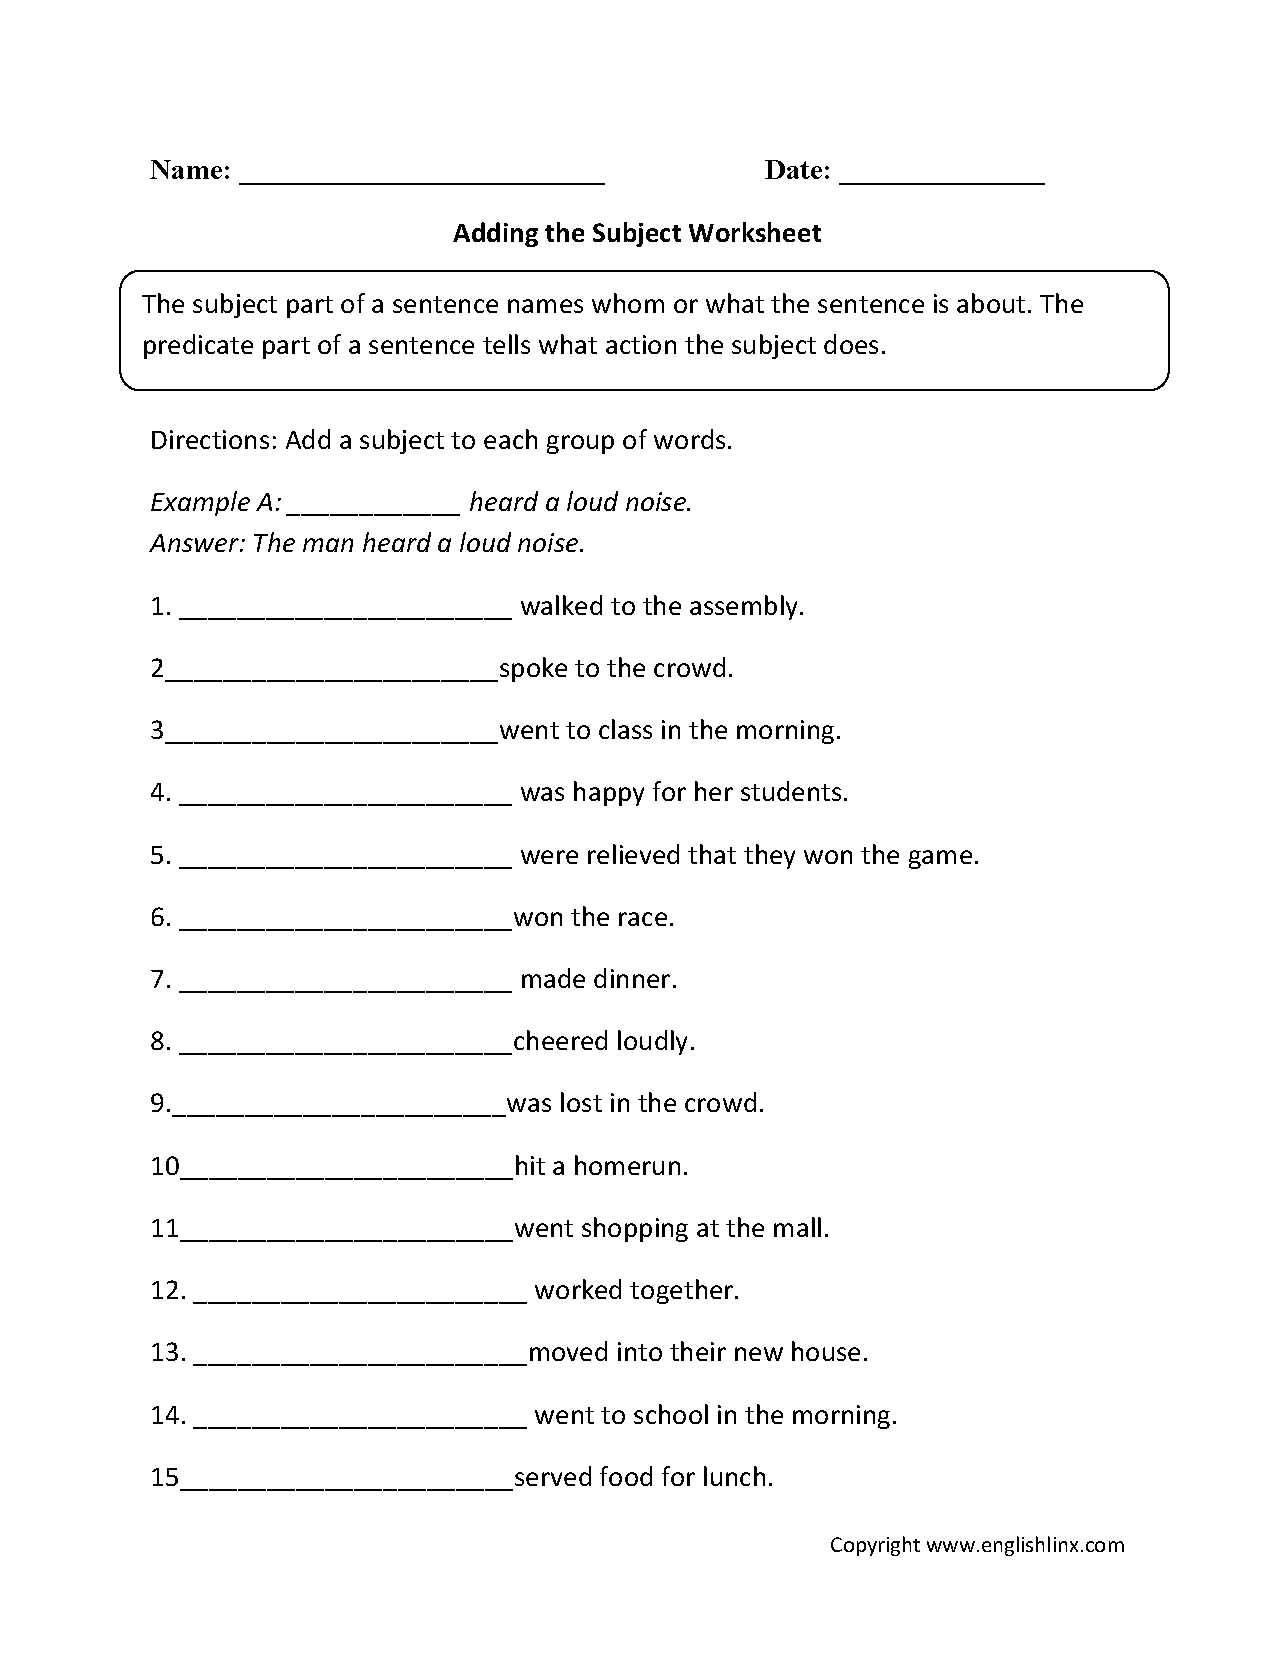 Adding A Subject Worksheet